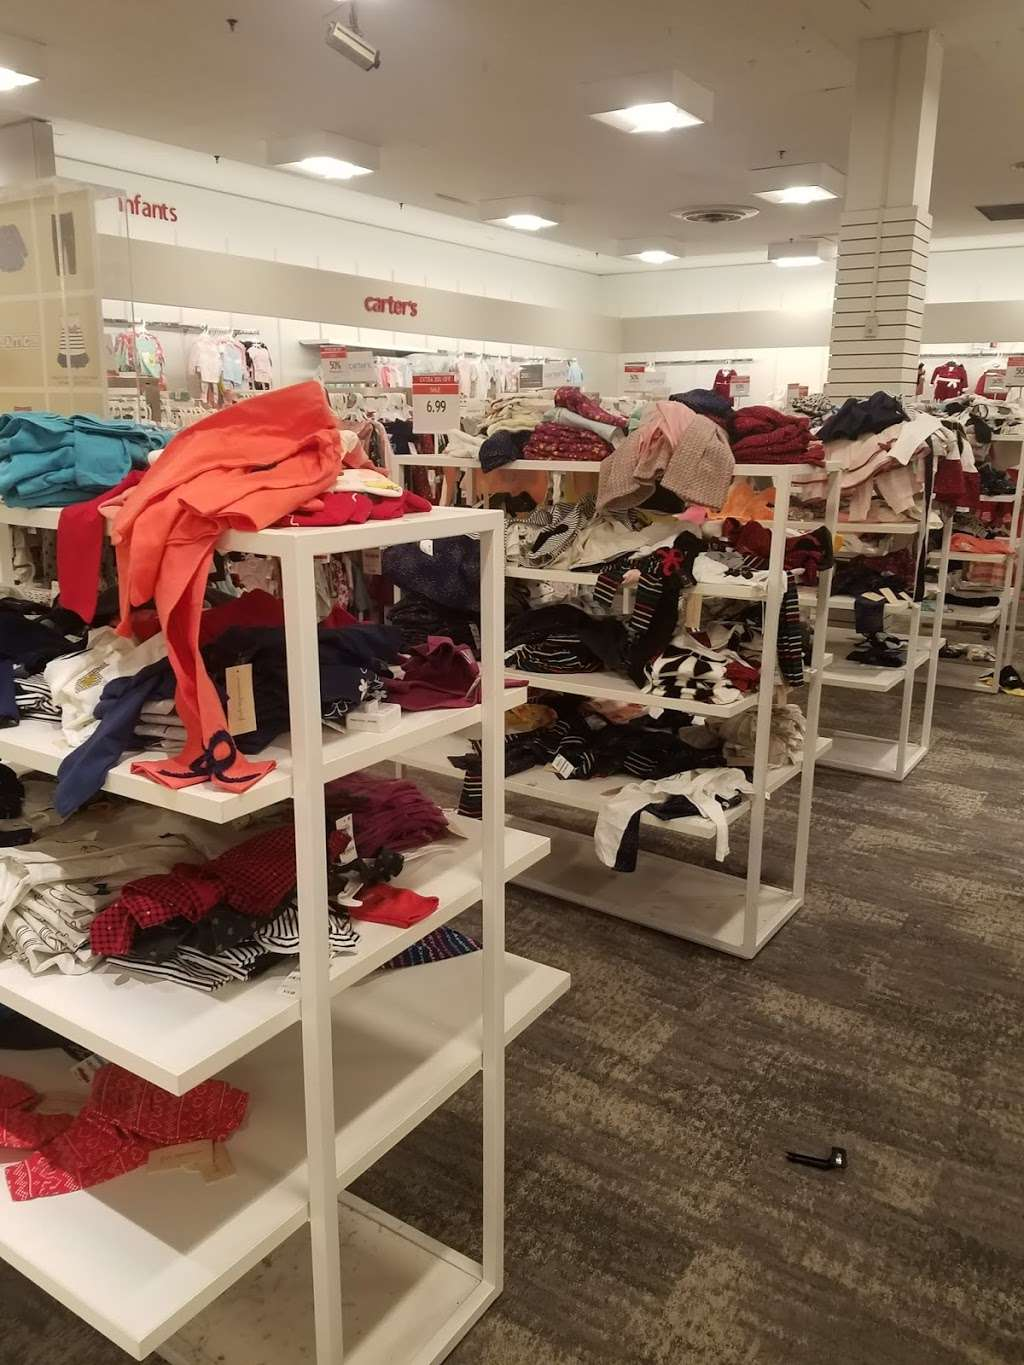 Macys Mens Store - clothing store  | Photo 1 of 9 | Address: 69 Green Acres Rd S, Valley Stream, NY 11581, USA | Phone: (516) 561-6100